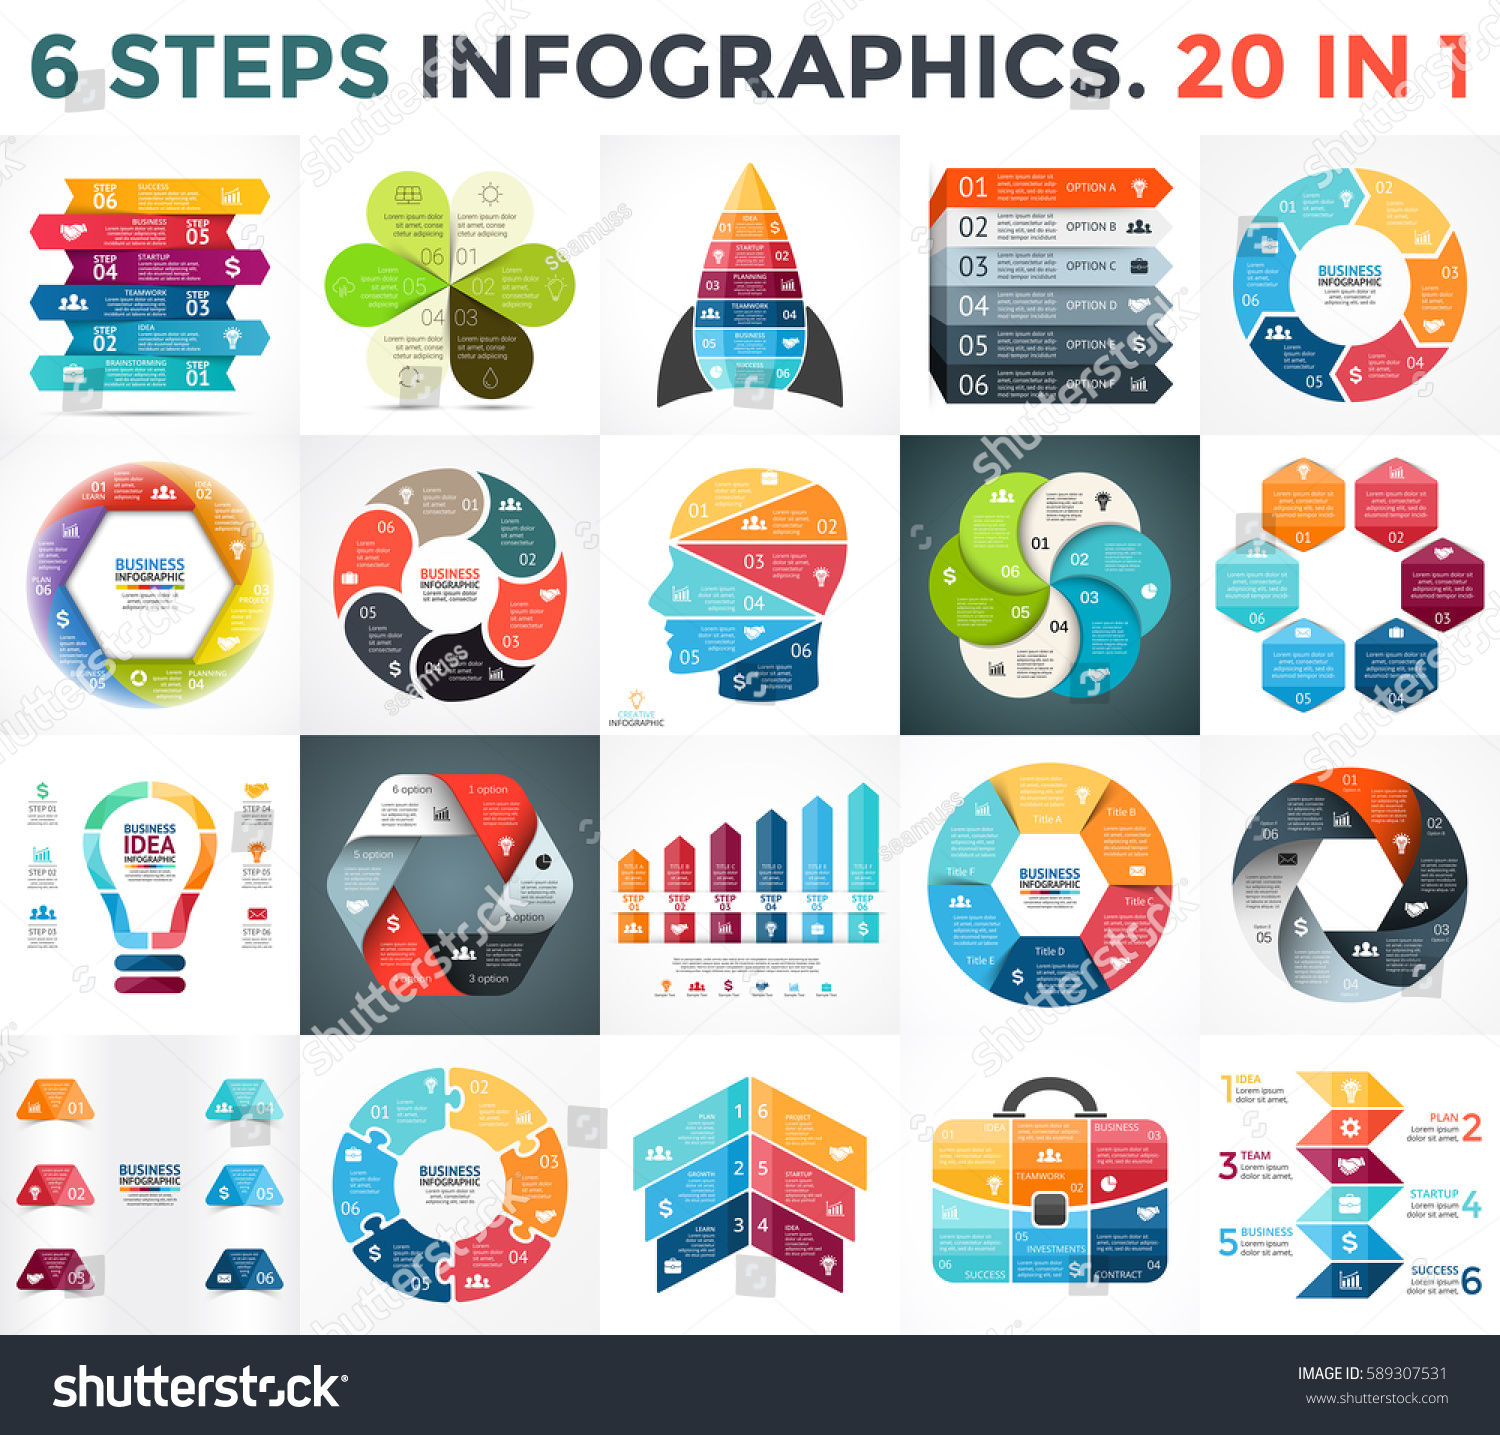 Process cycling arrow by arrow royalty free stock images image - Vector Circle Arrows Infographic Cycle Diagram Business Graph Presentation Chart 6 Options